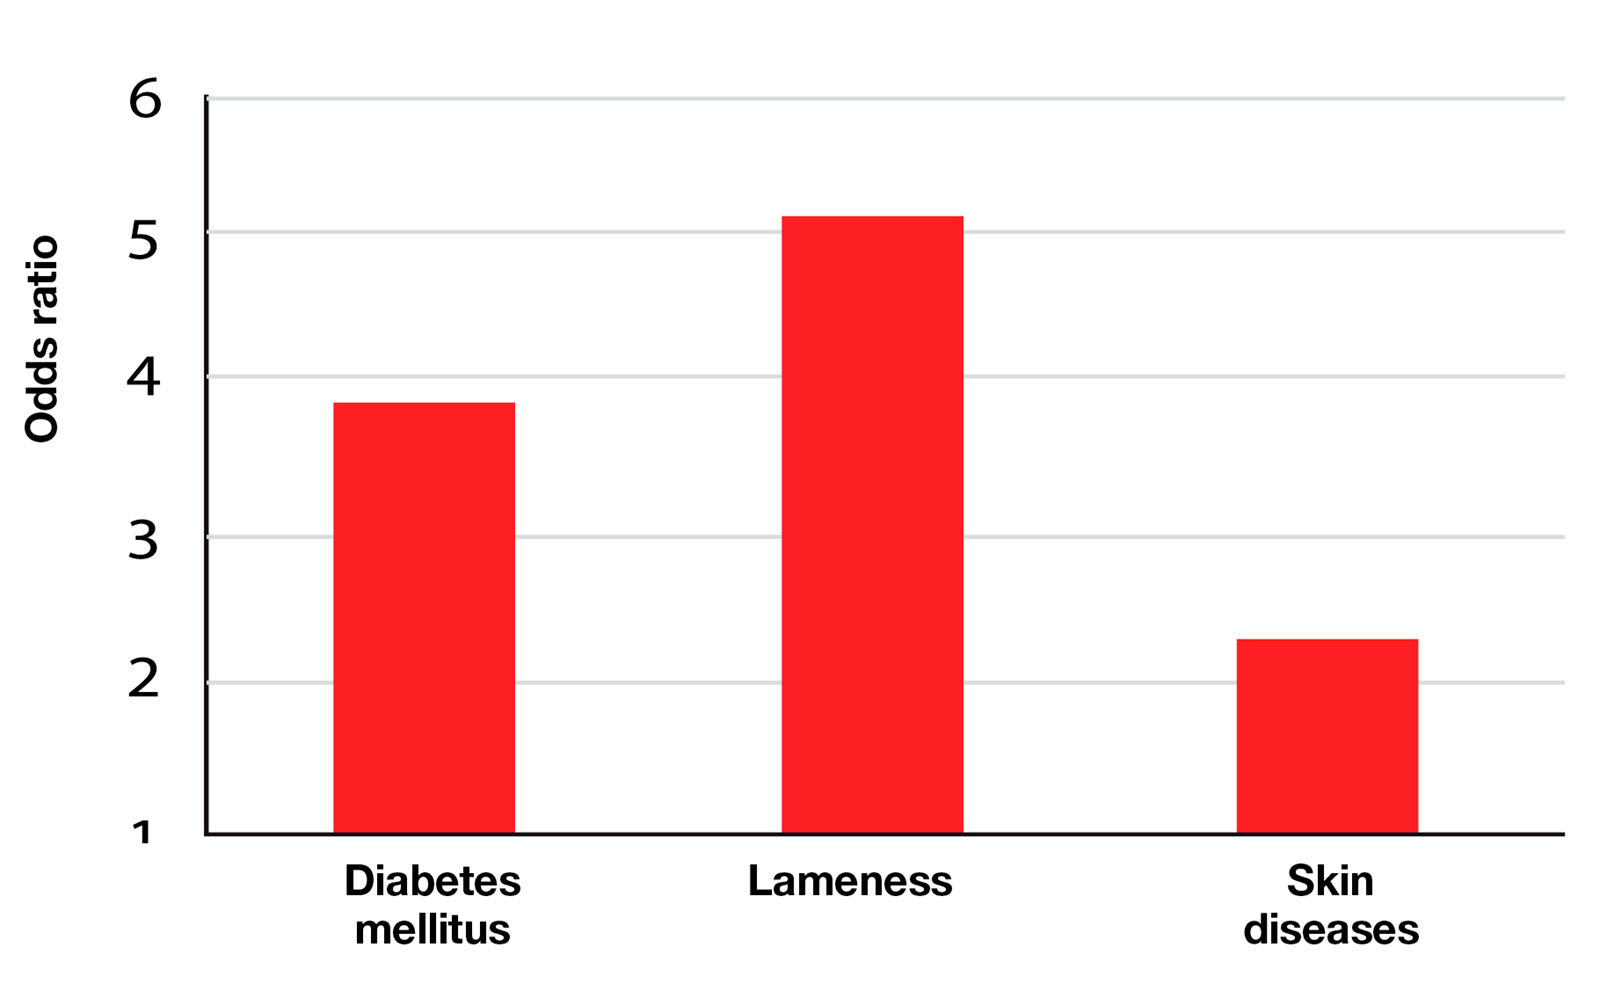 Figure 4. Overweight and obese cats are much more likely to suffer from diabetes mellitus, lameness and/or skin diseases than cats in optimal body condition (approximately four, five and two times respectively over a four-year period) (9).